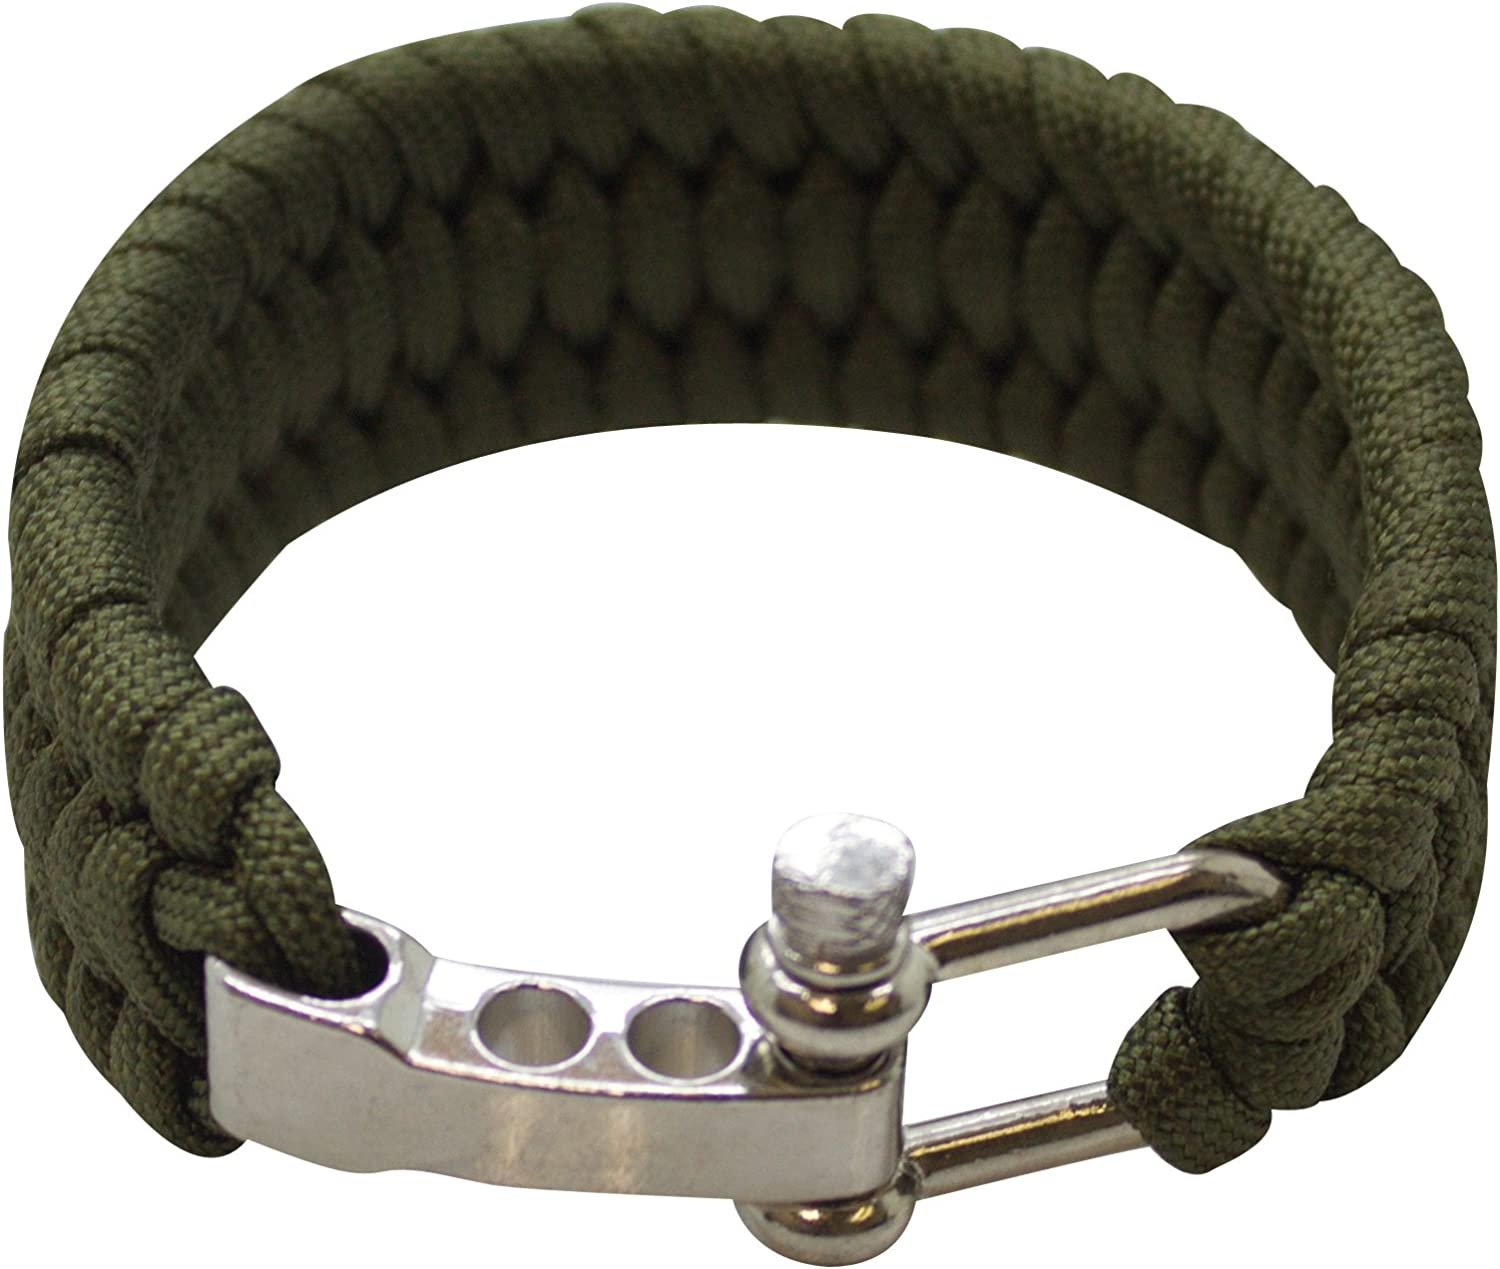 Southland Archery Supply SAS SurvivalParacordBracelet550lbs(Green with Steel Shackle Buckle)